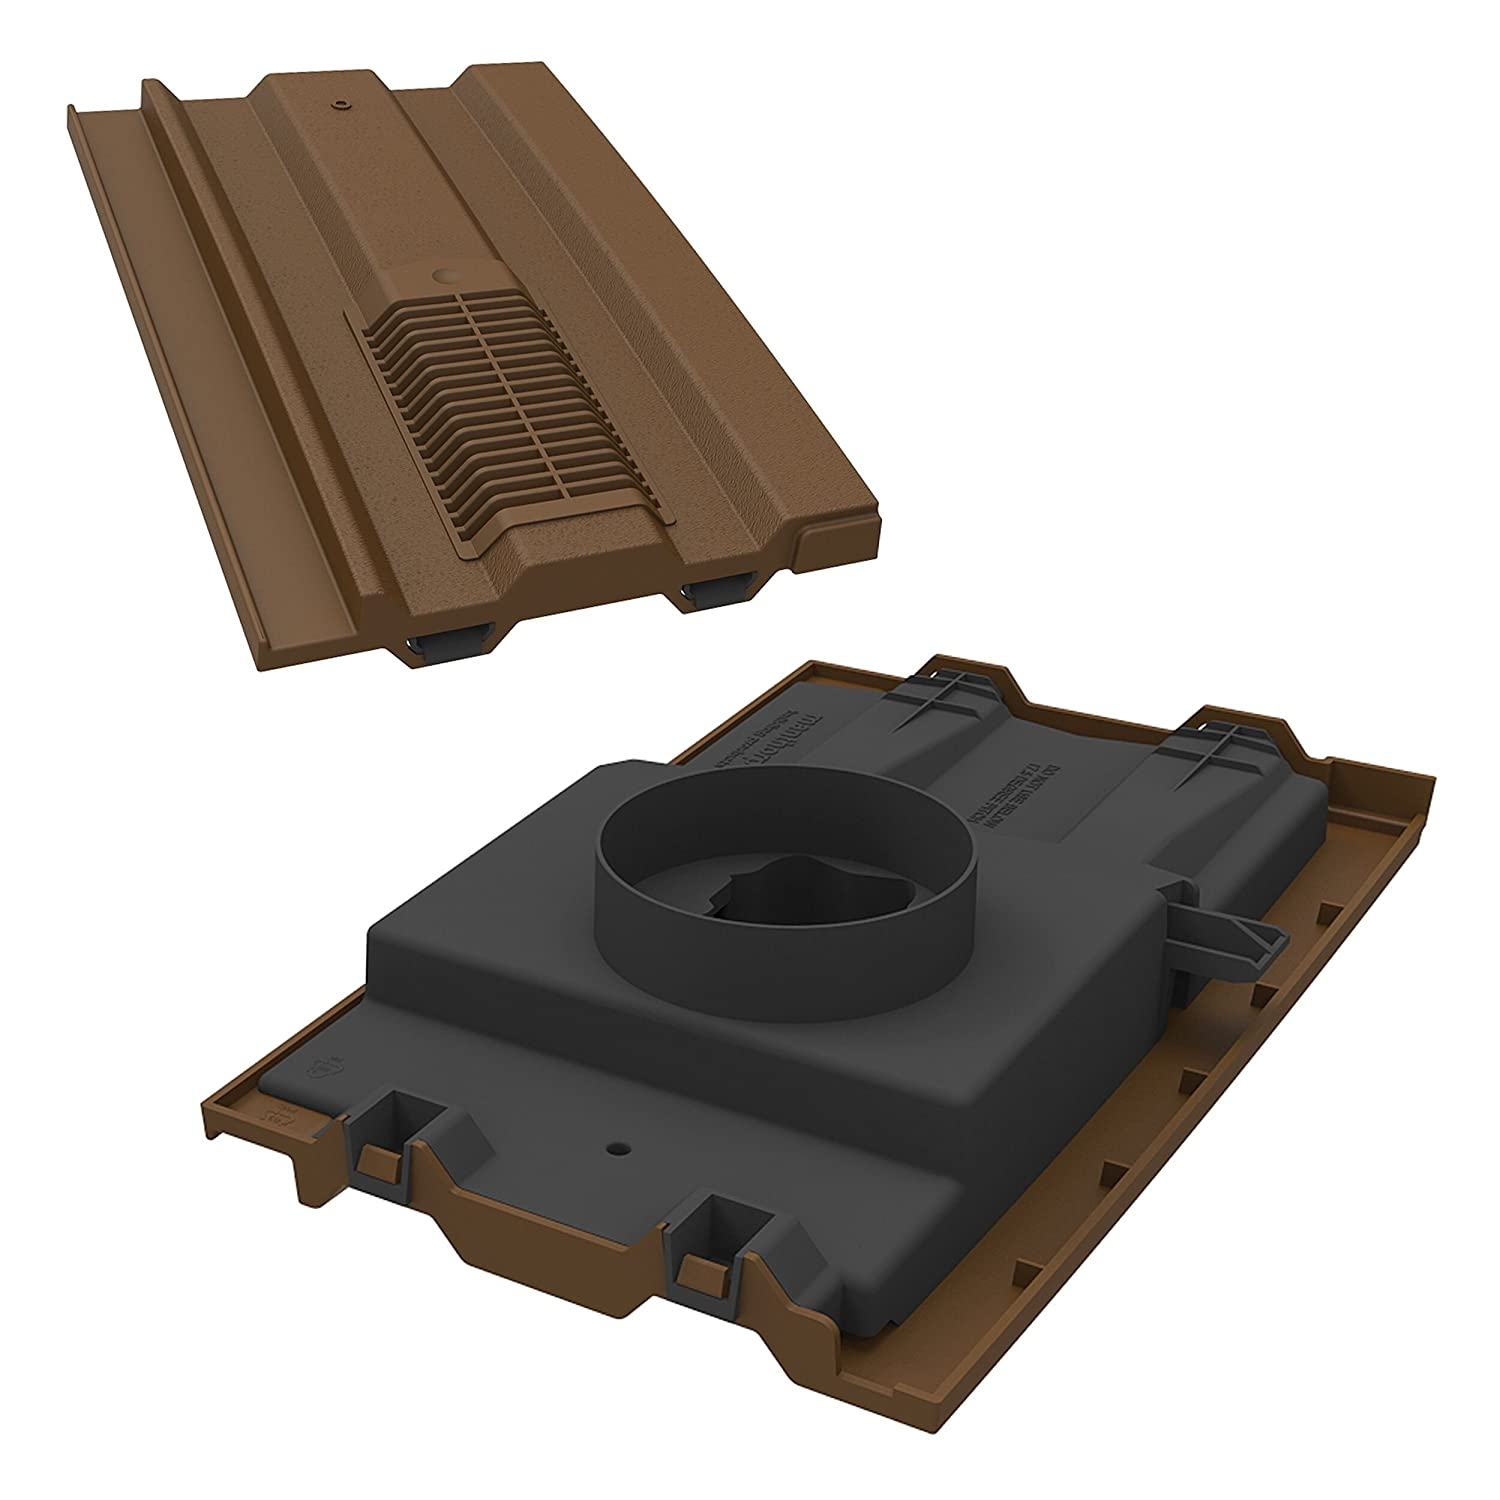 Manthorpe Roof Tile Vent With Pipe Adaptor 15' x 9' To Fit Marley Ludlow Plus, Redland 49, Forticrete V2 Dark Brown Textured